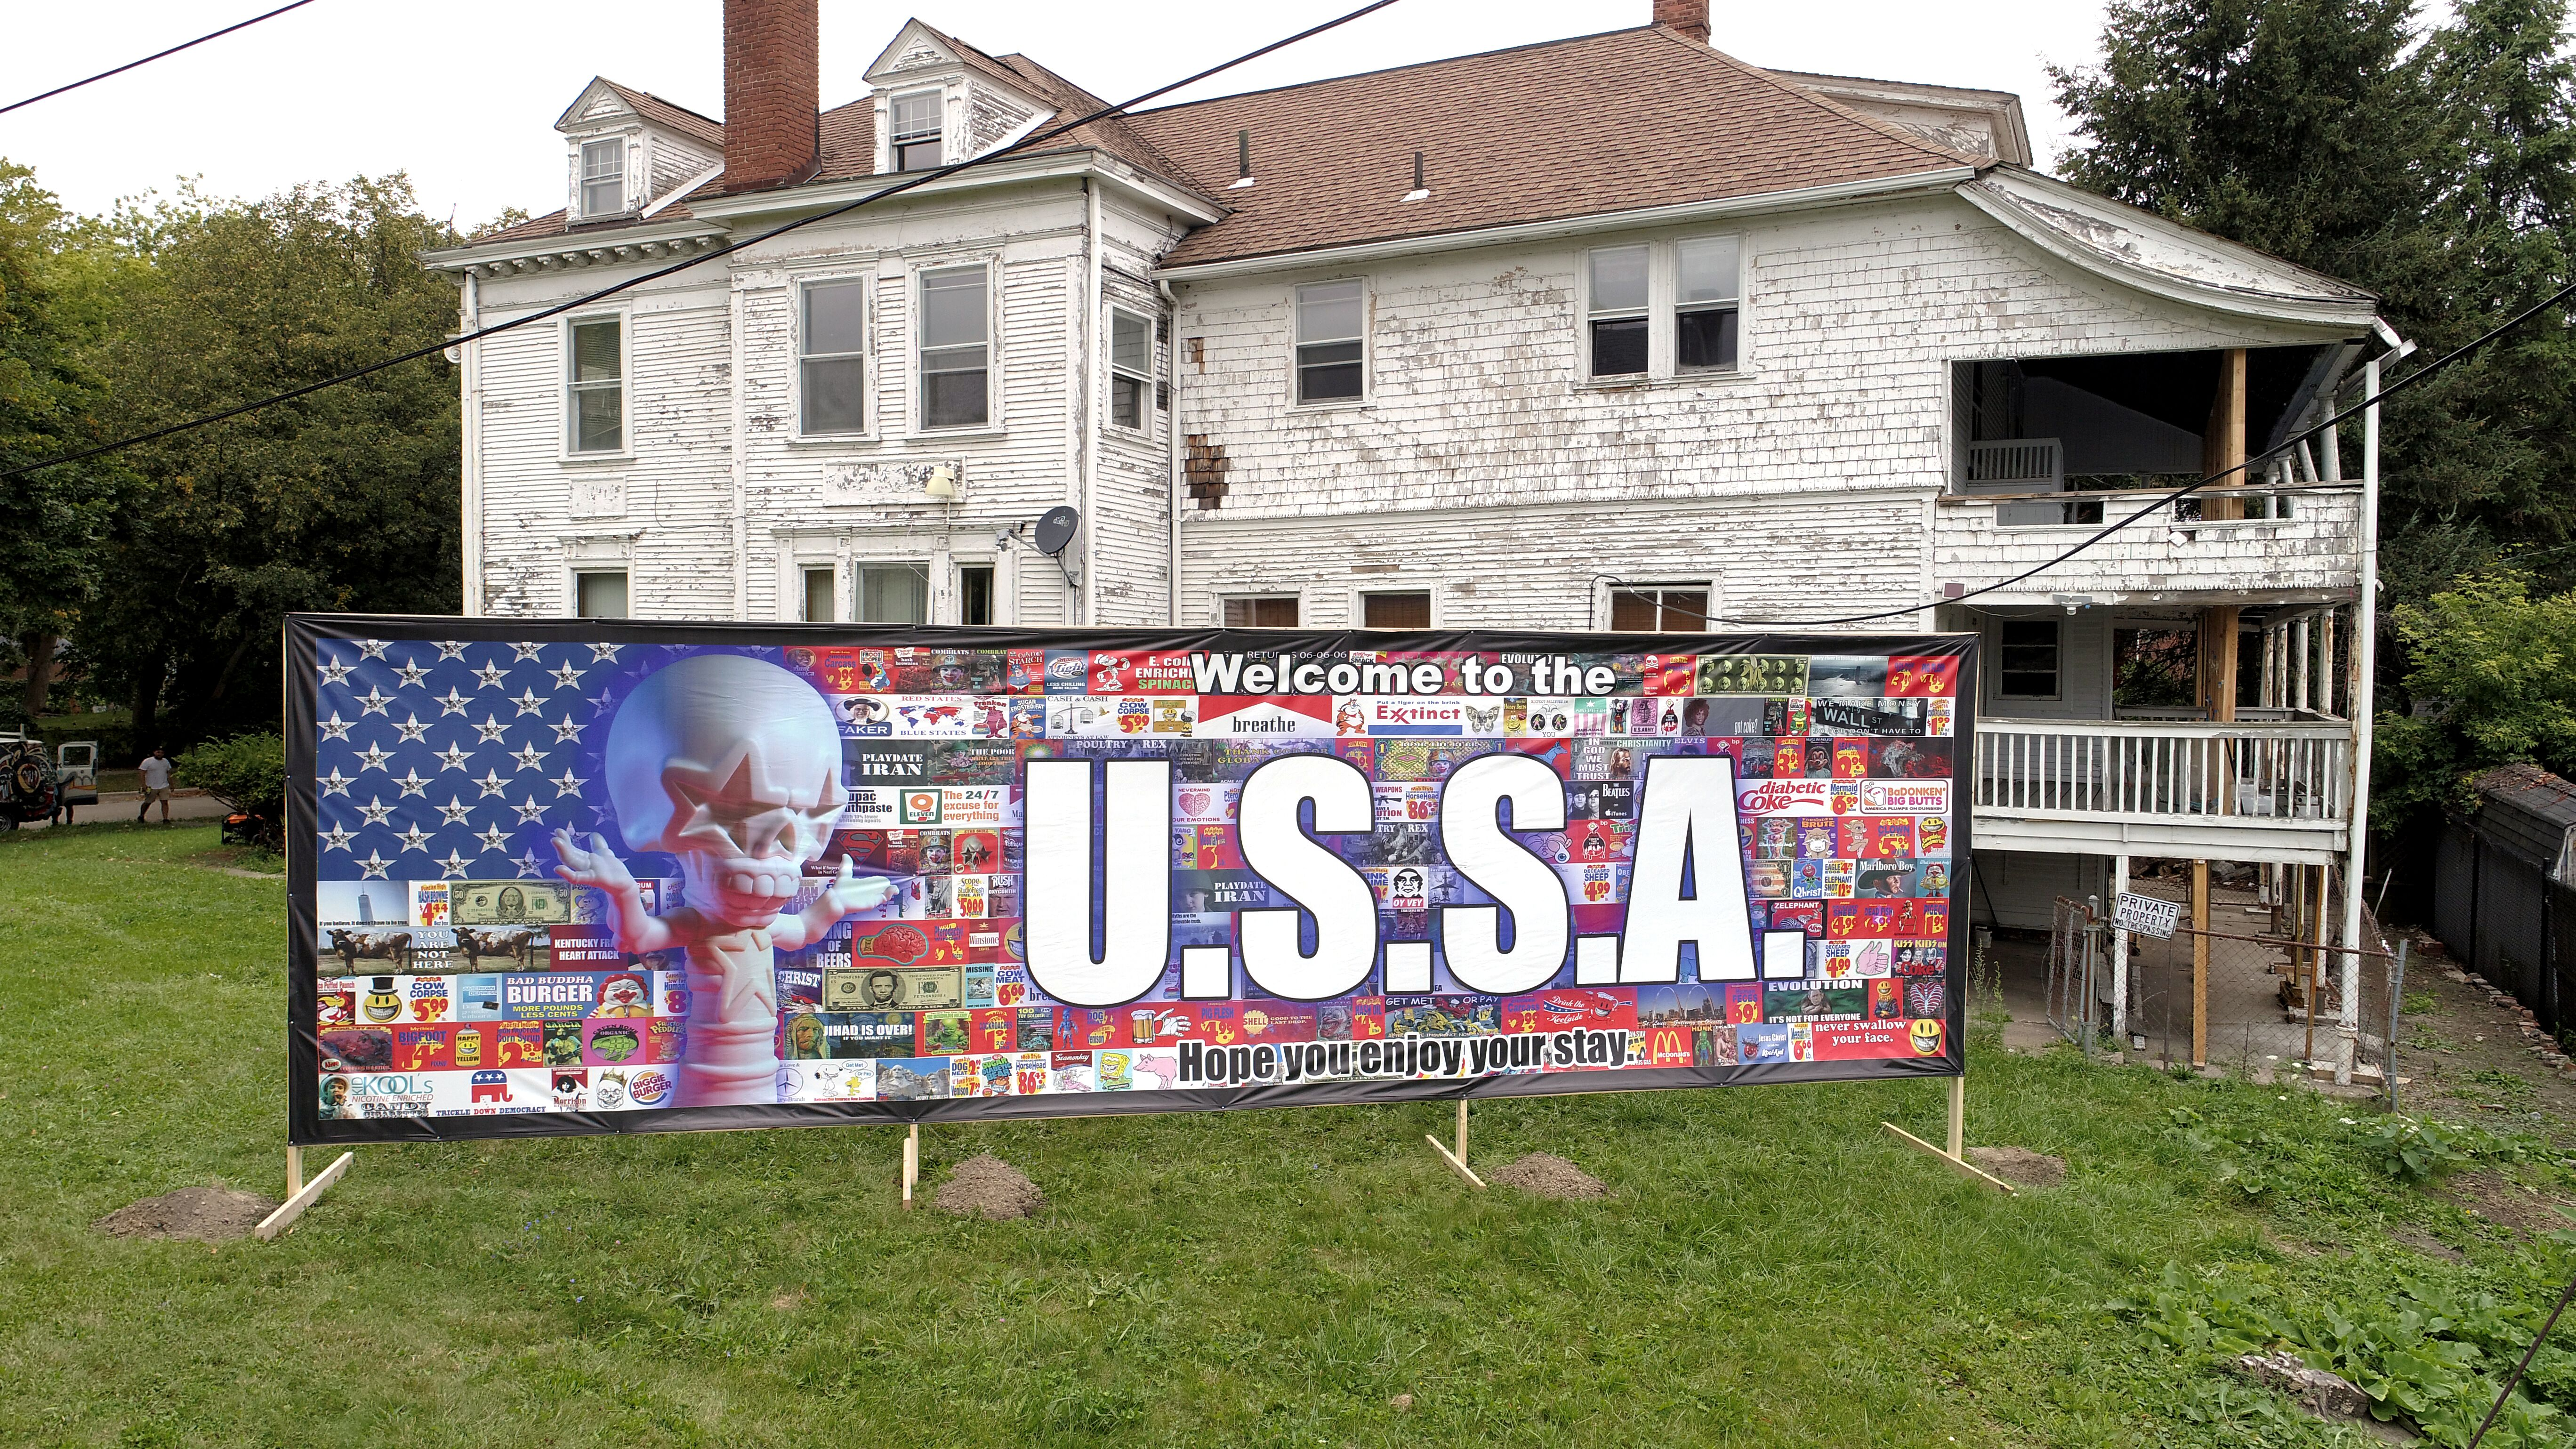 Ron English's Welcome Wall, located in Detroit's Berry Joseph Subdivision